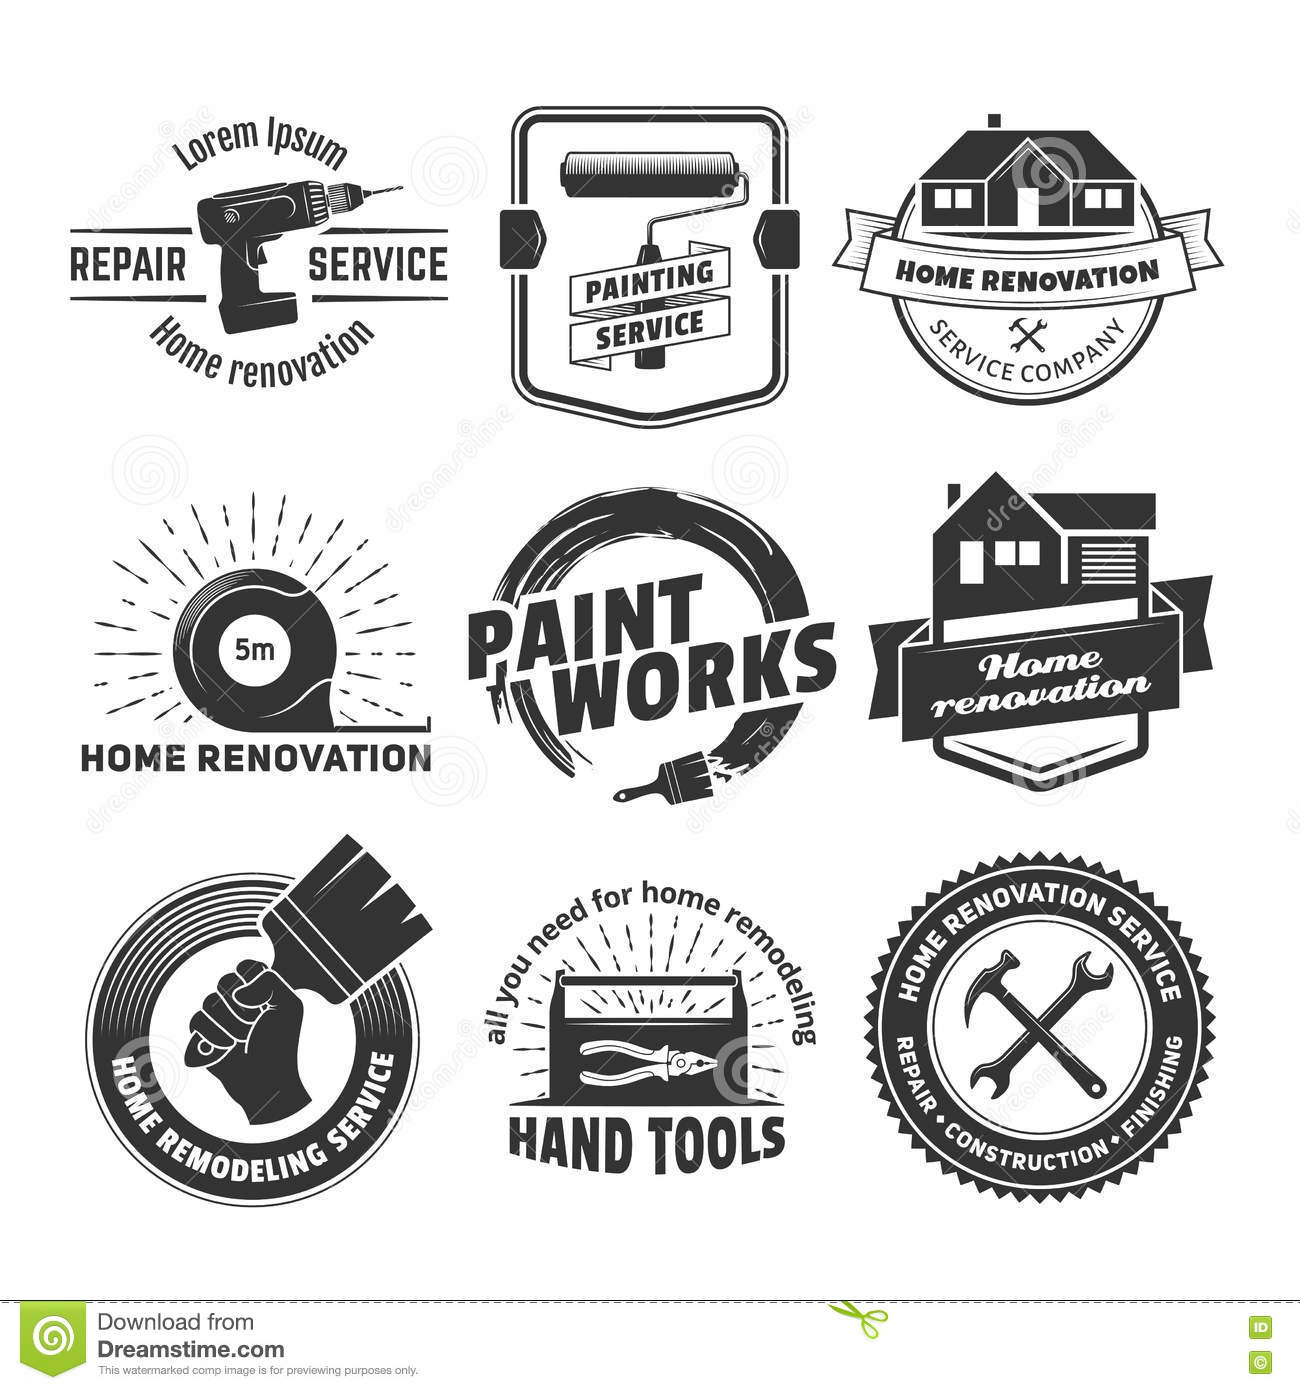 Home remodeling logo remodeling logo clipart - Equipment Home House Remodeling